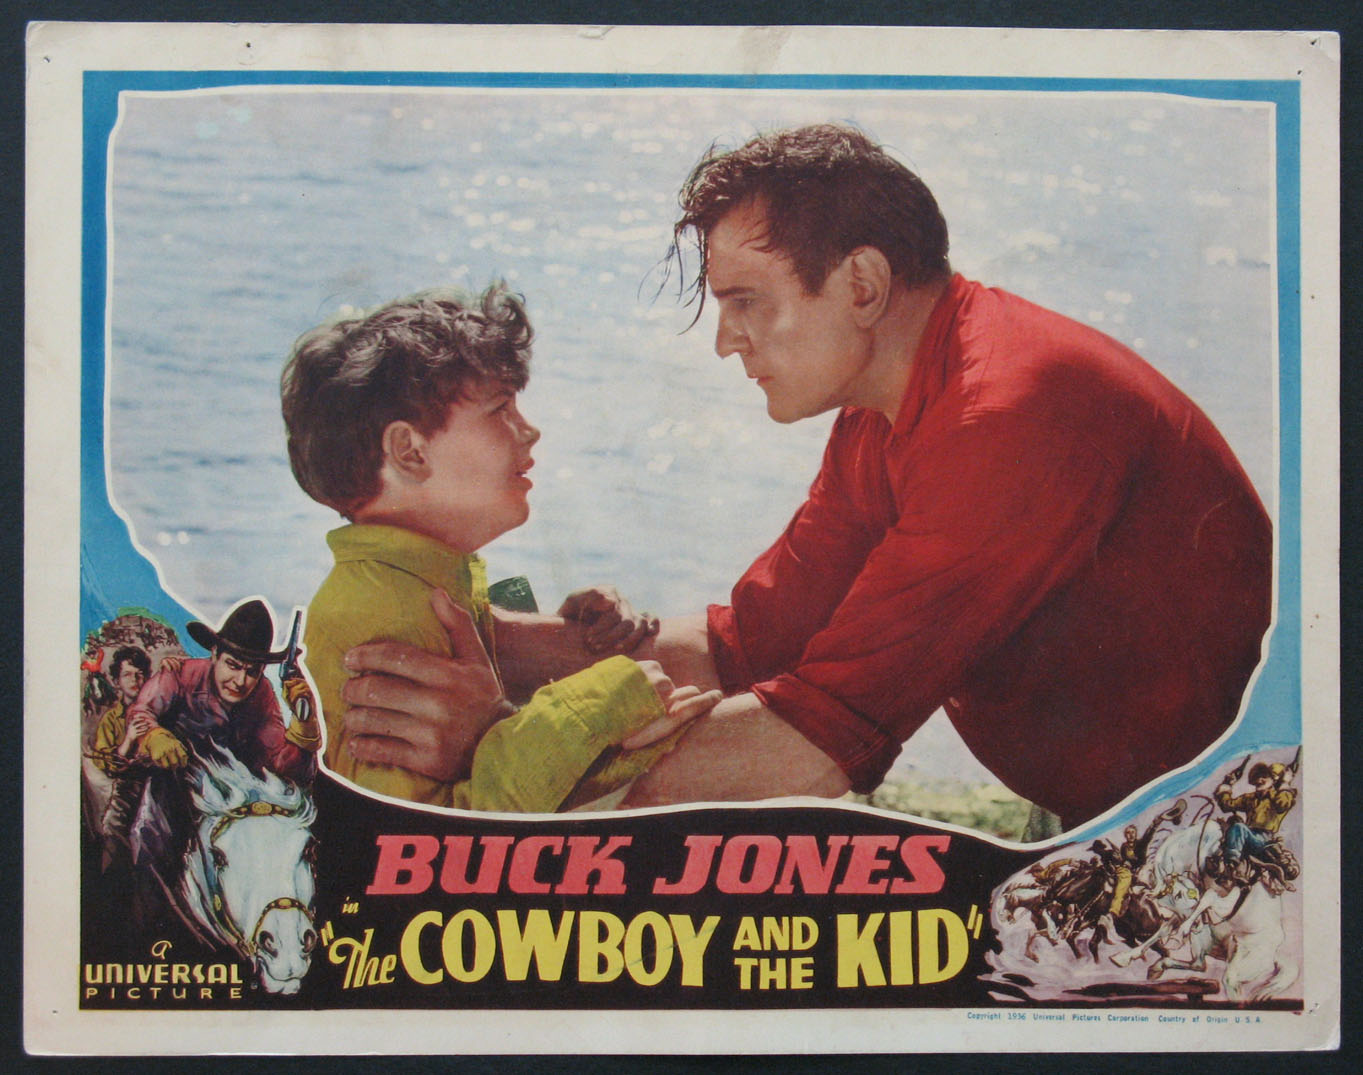 COWBOY AND THE KID @ FilmPosters.com